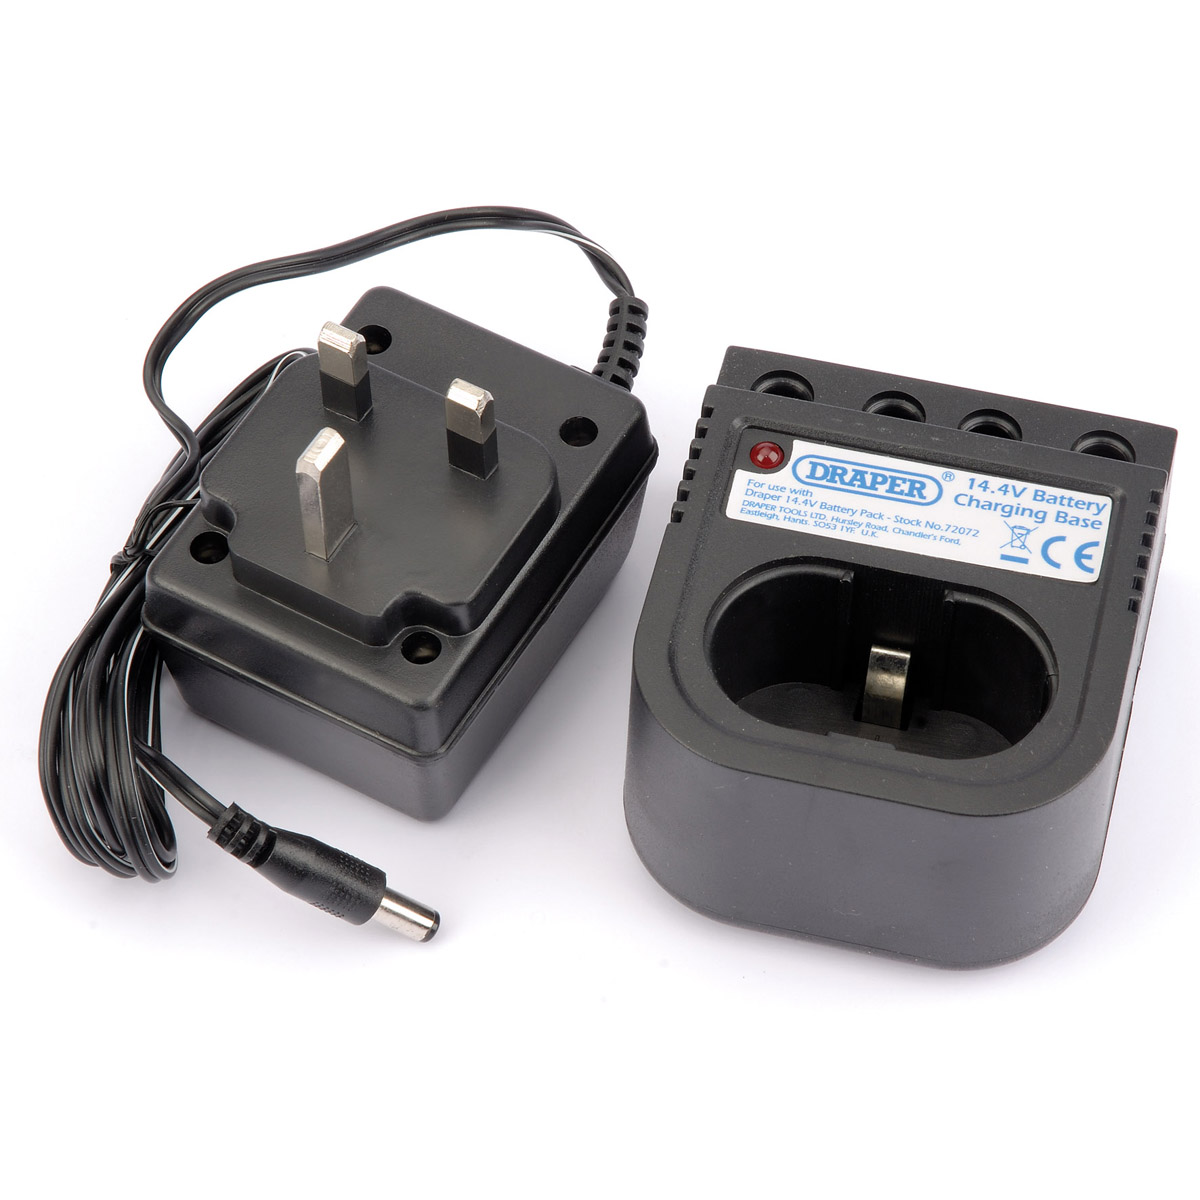 Draper 72954 230V 3-5 Hour Charger For 14.4V Cordless Drill Battery Enlarged Preview